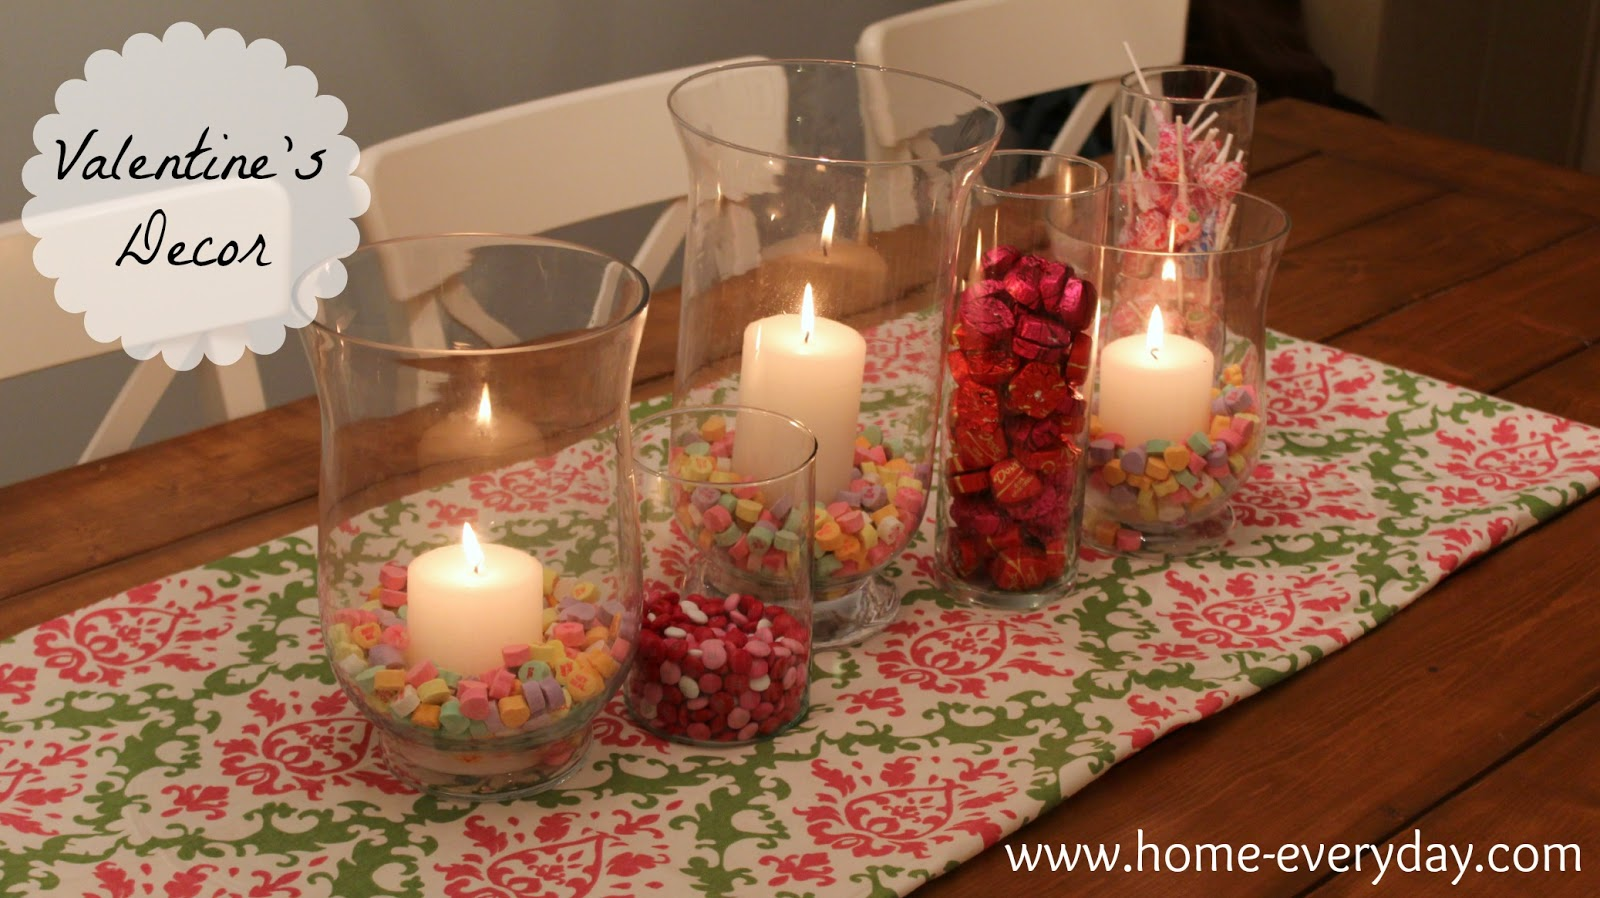 Flowers Candy And Books Valentine S Dining Table Decor Home